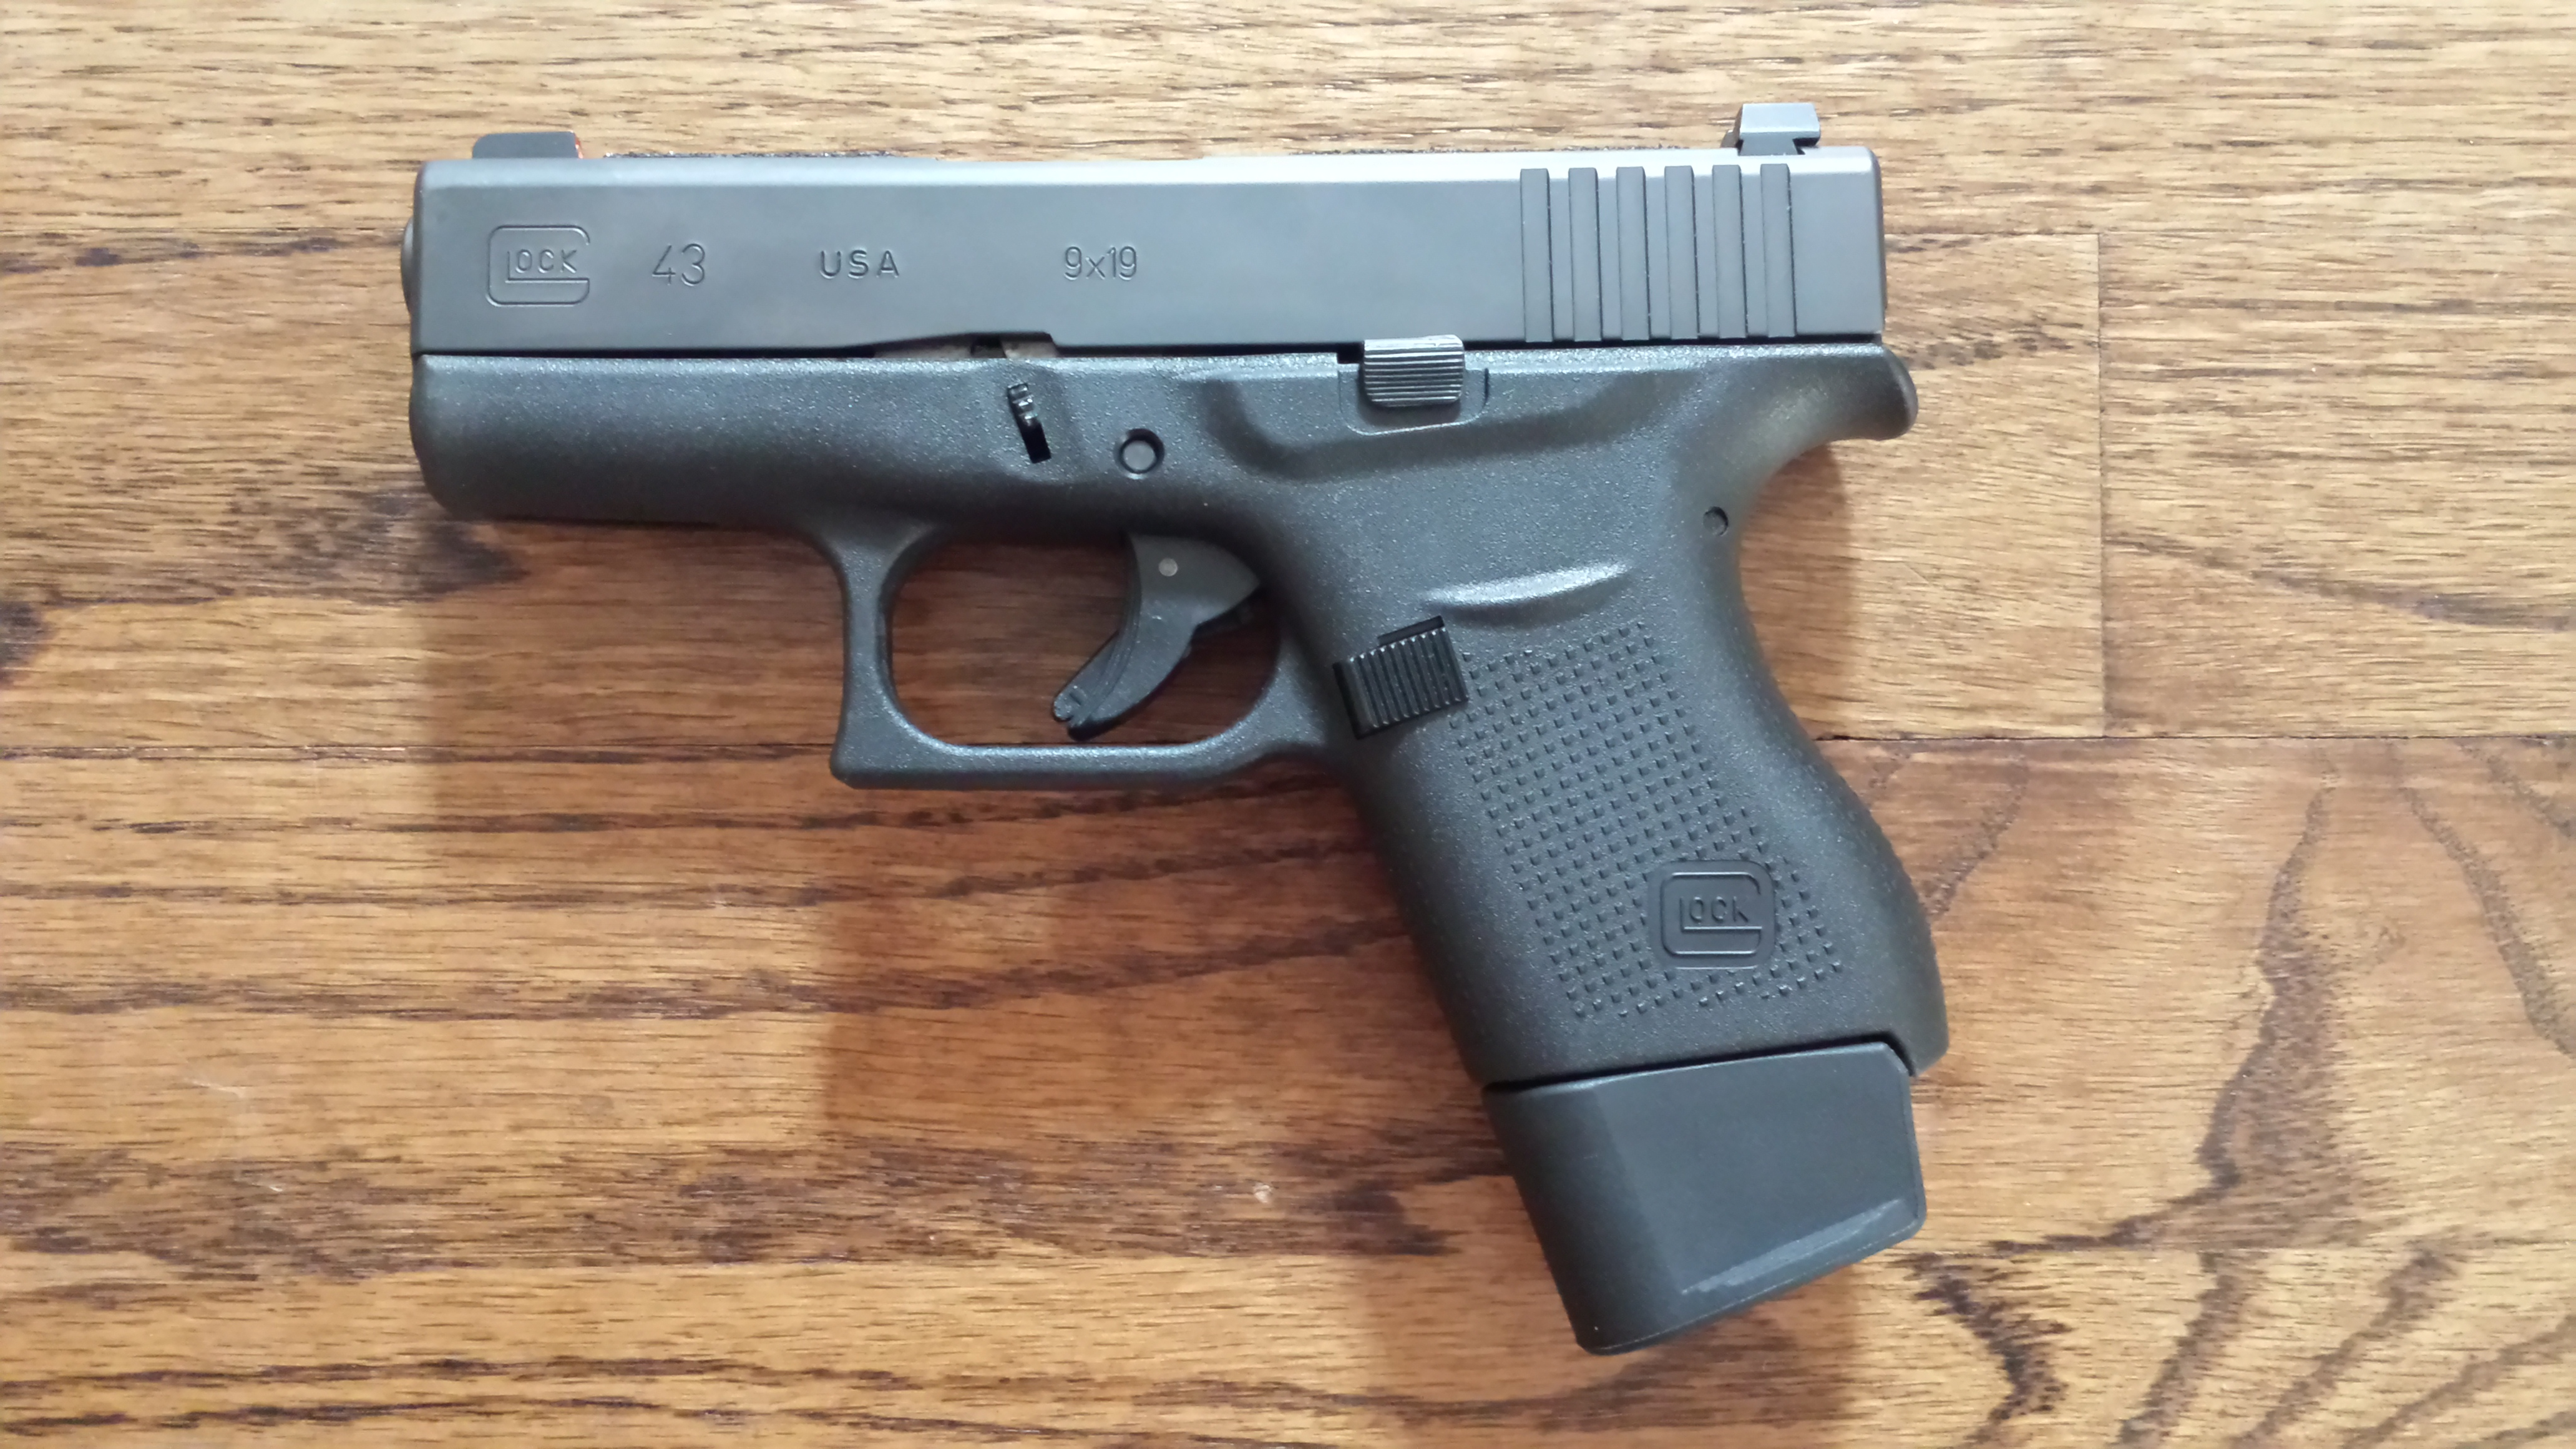 Equipment Review: The Glock 43 – CIVILIAN GUNFIGHTER